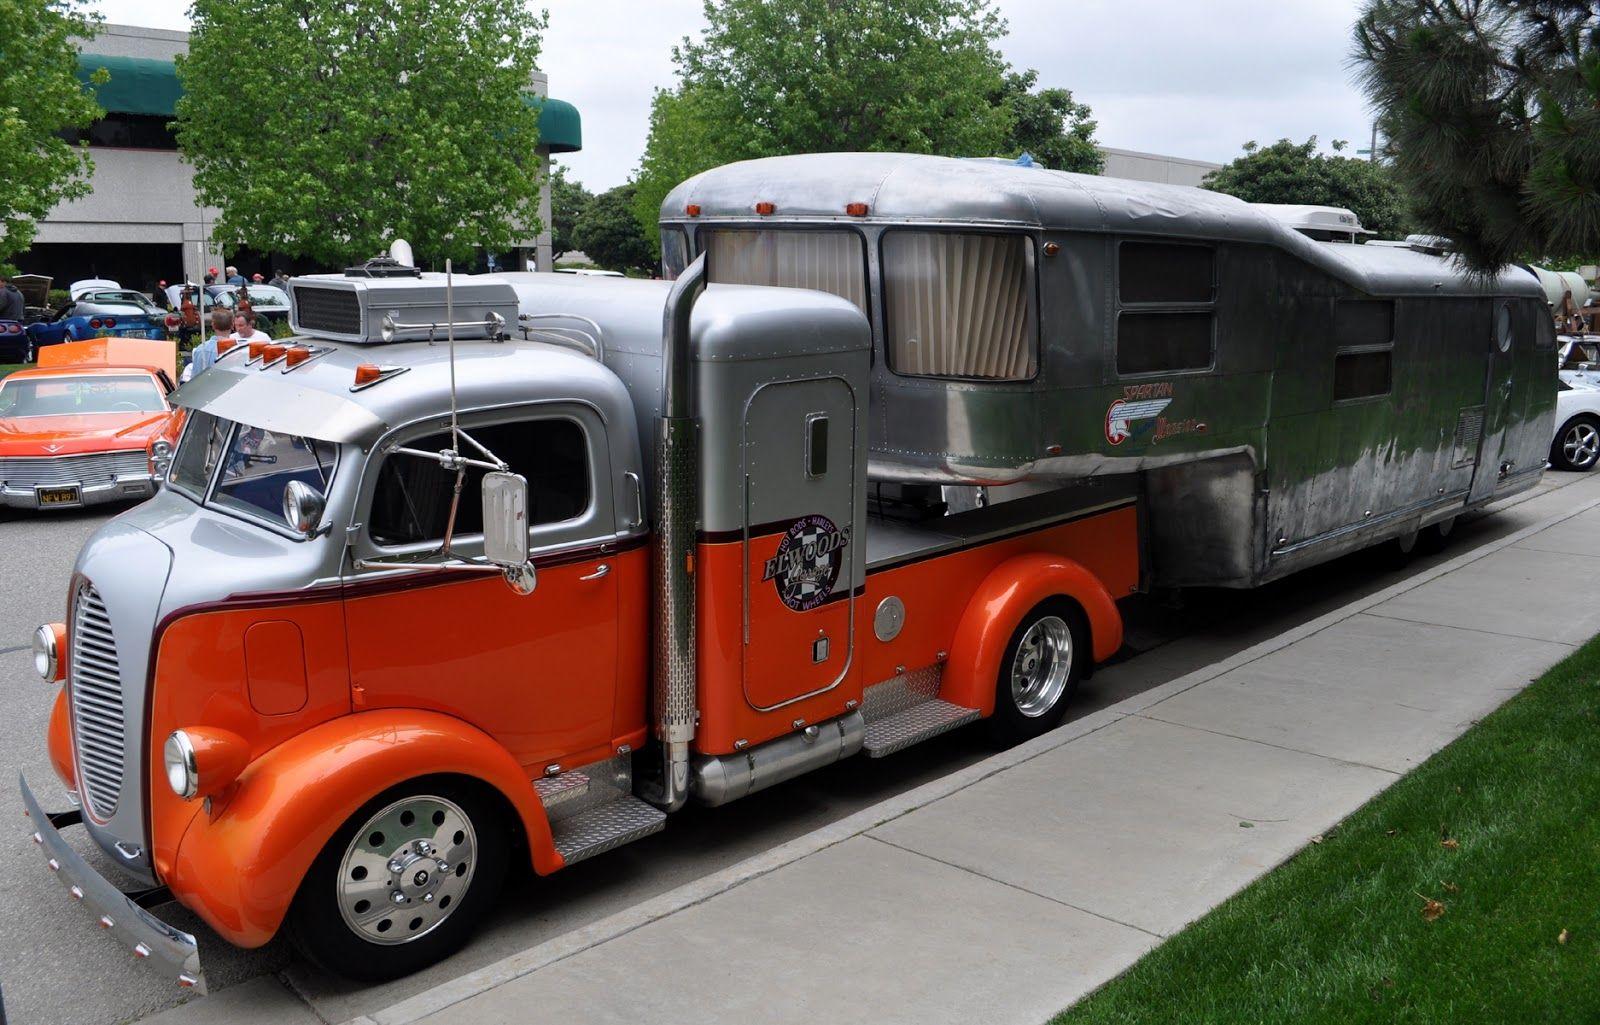 Just a car guy most impressive hot rod truck and trailer i ve seen in a while the elwoods garage spartan custom mansion and 1938 ford coe